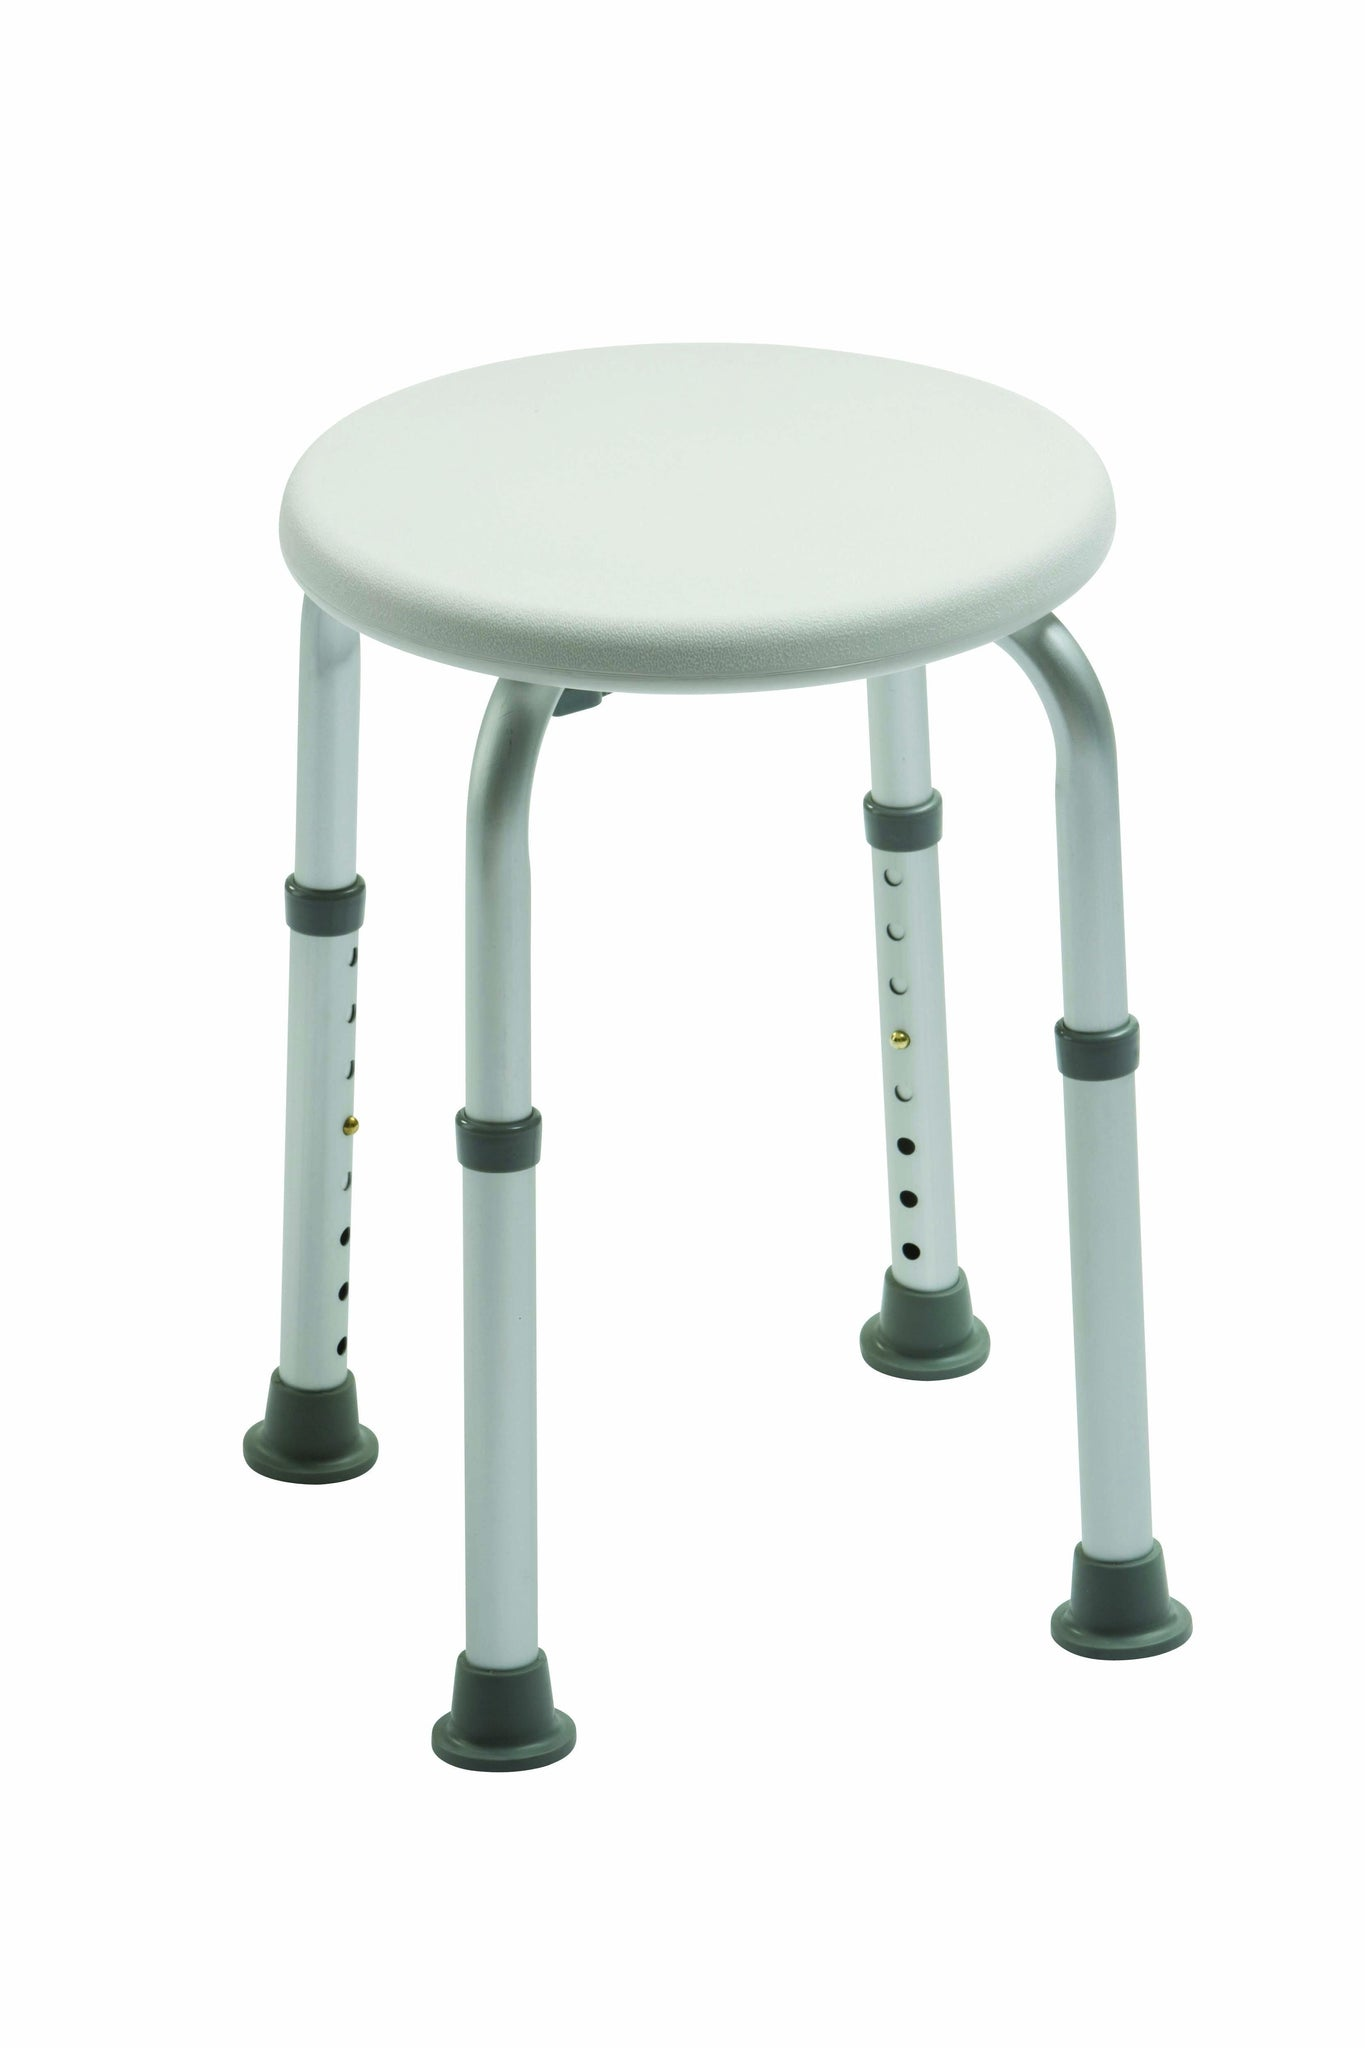 Round Shower Stool Retail Packed - Mobility2you - discount wholesale prices - from Drive DeVilbiss Healthcare